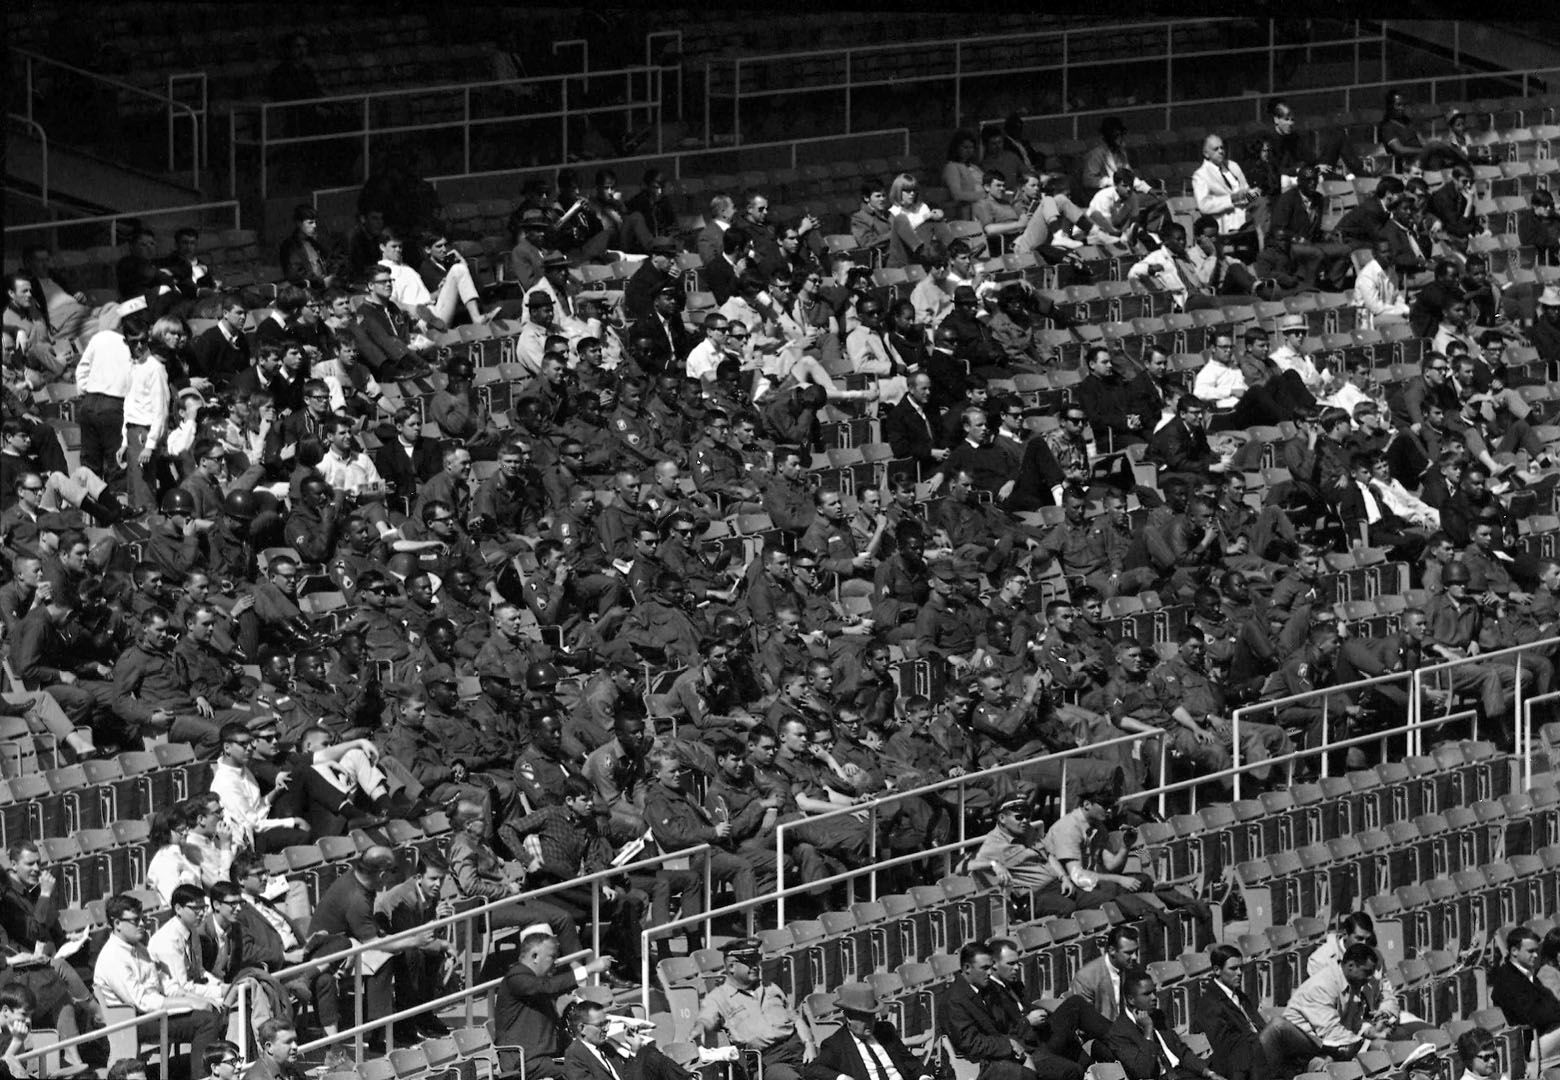 As more than 32,000 fans watch the baseball opener in the District of Columbia Stadium in Washington on April 10, 1968, in background, these troopers of the 82nd Airborne Division went about their patrolling outside. They are part of the federal forces sent into the Washington area when racial violence broke out several days before. Inside the stadium, the Minnesota Twin defeated the Washington Senators, 2-0. The 82nd Division is based at Fort Bragg, N.C. (AP Photo/Charles Tasnadi)